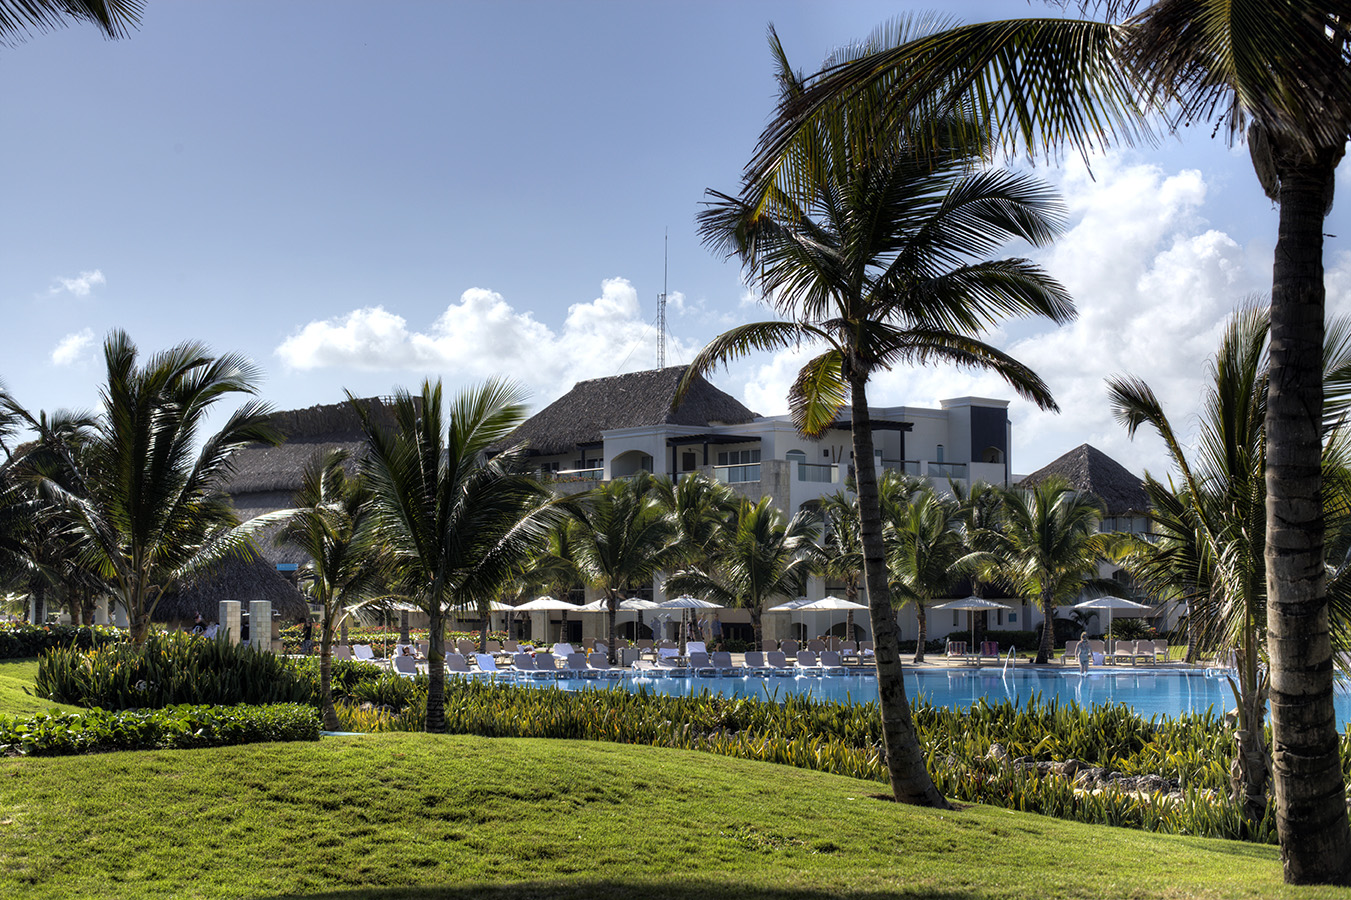 Hard Rock Resort Grounds and Pool - Punta Cana, DR